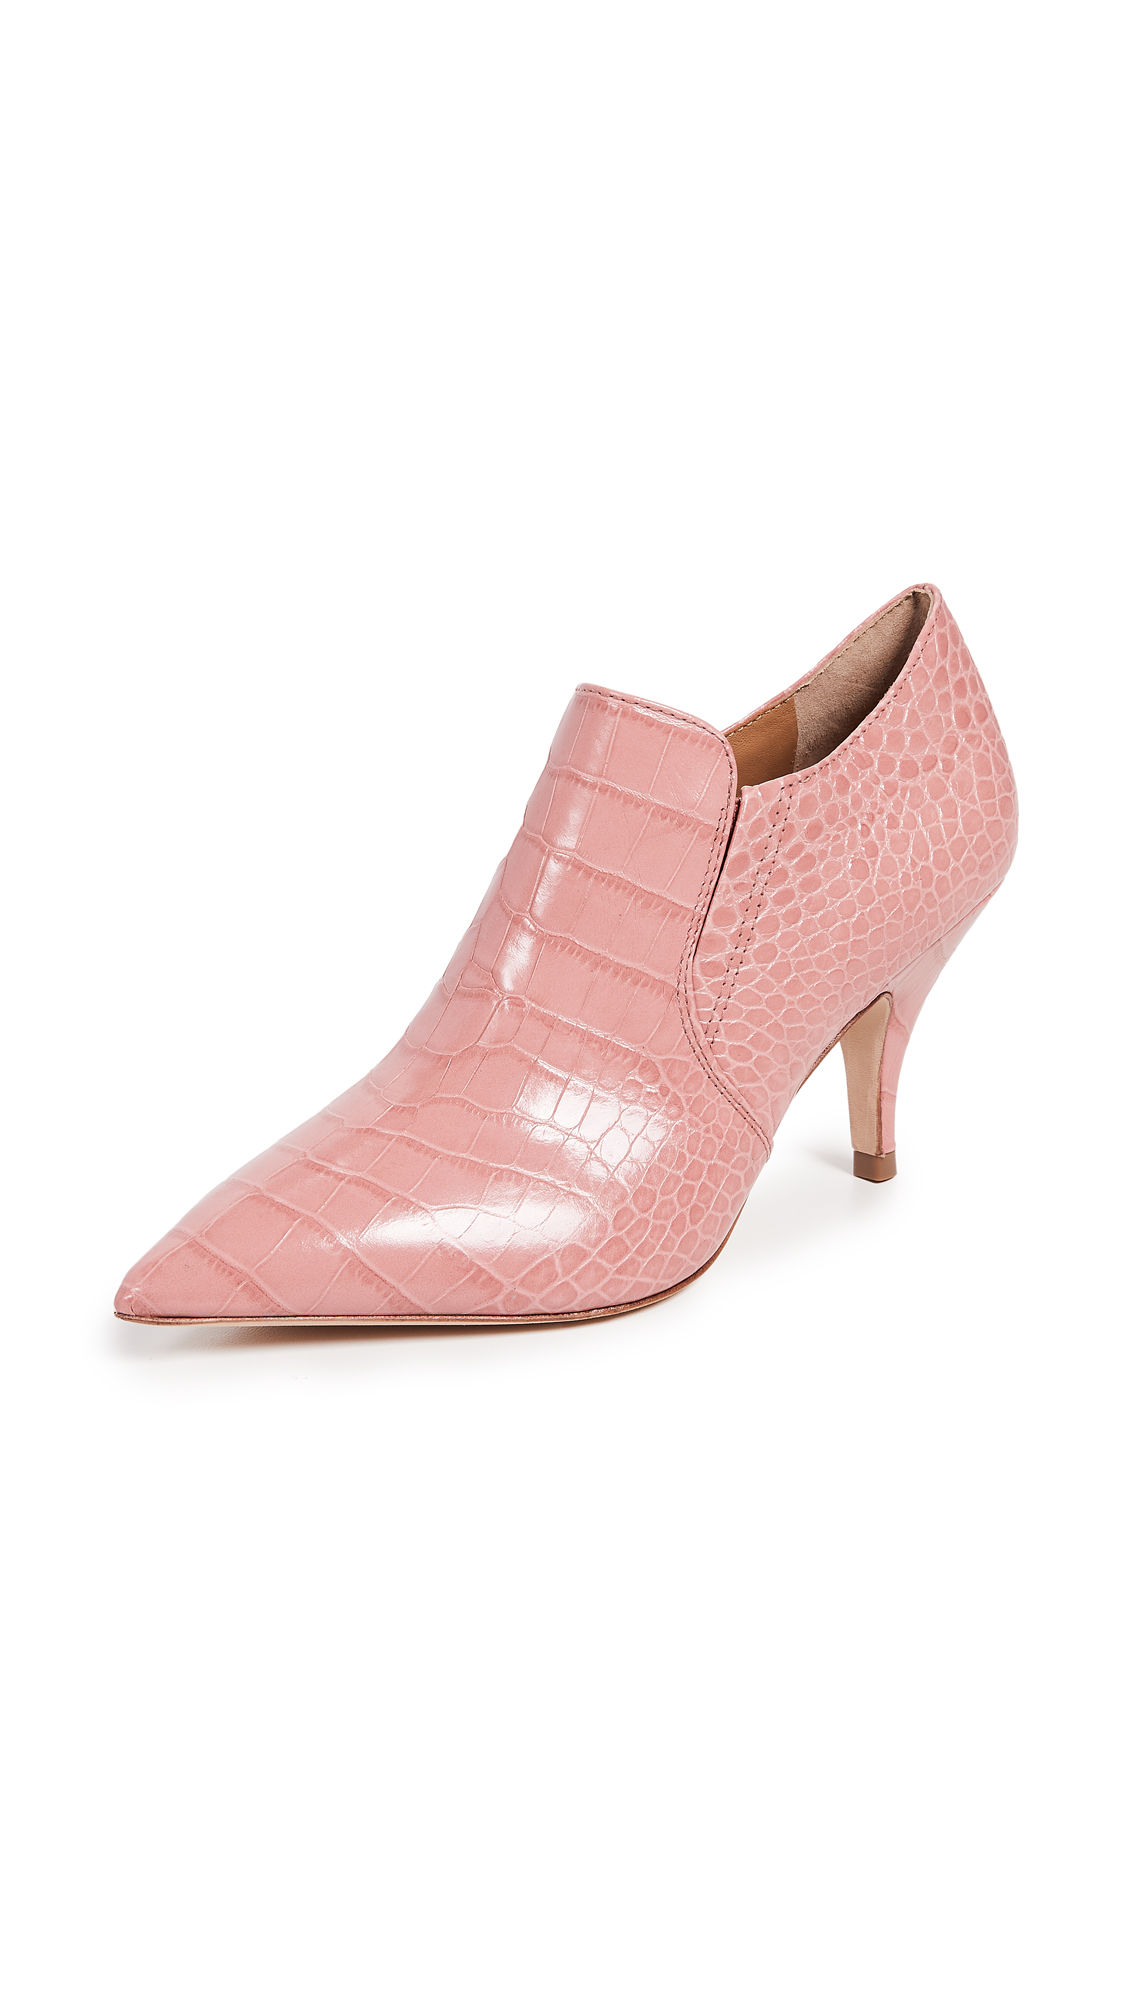 Tory Burch Georgina 80mm Booties